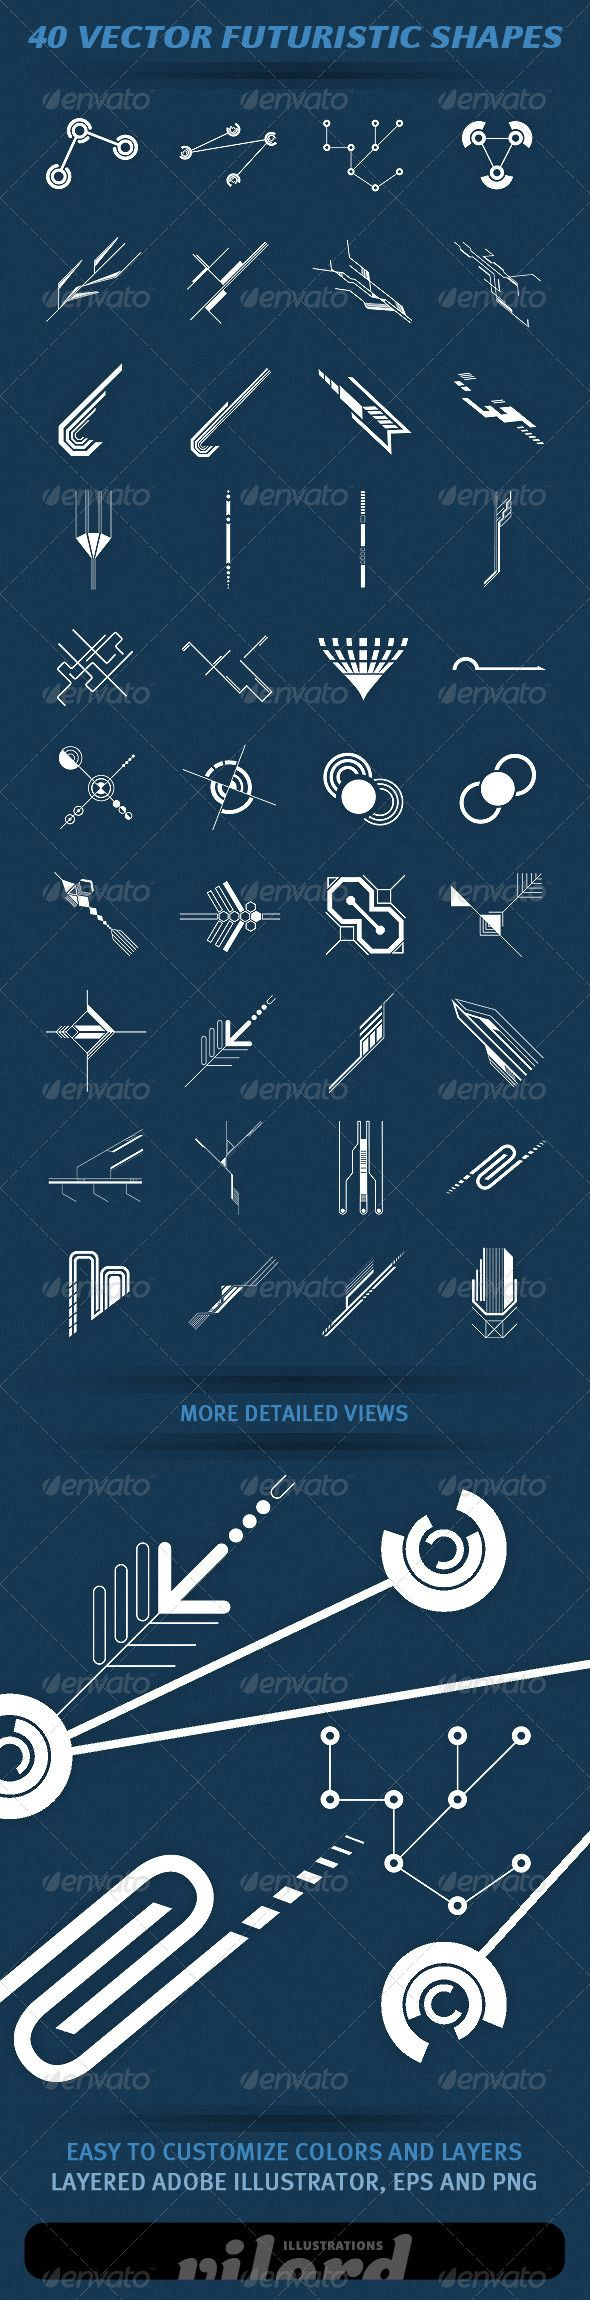 "40 Vector Futuristic Shapes  #GraphicRiver         Set of 40 vector hi-tech futuristic shapes for your graphic designs. Great for print or web design! Enjoy   	 Adobe Illustrator is main file and ""fully editable"". Also transparent PNG and EPS files in the package.     Created: 4April12 GraphicsFilesIncluded: TransparentPNG #VectorEPS #AIIllustrator Layered: Yes MinimumAdobeCSVersion: CS Tags: decorative #future #futuristic #geometric #hi-tech #ornaments #schemes #shapes #technology #vector"